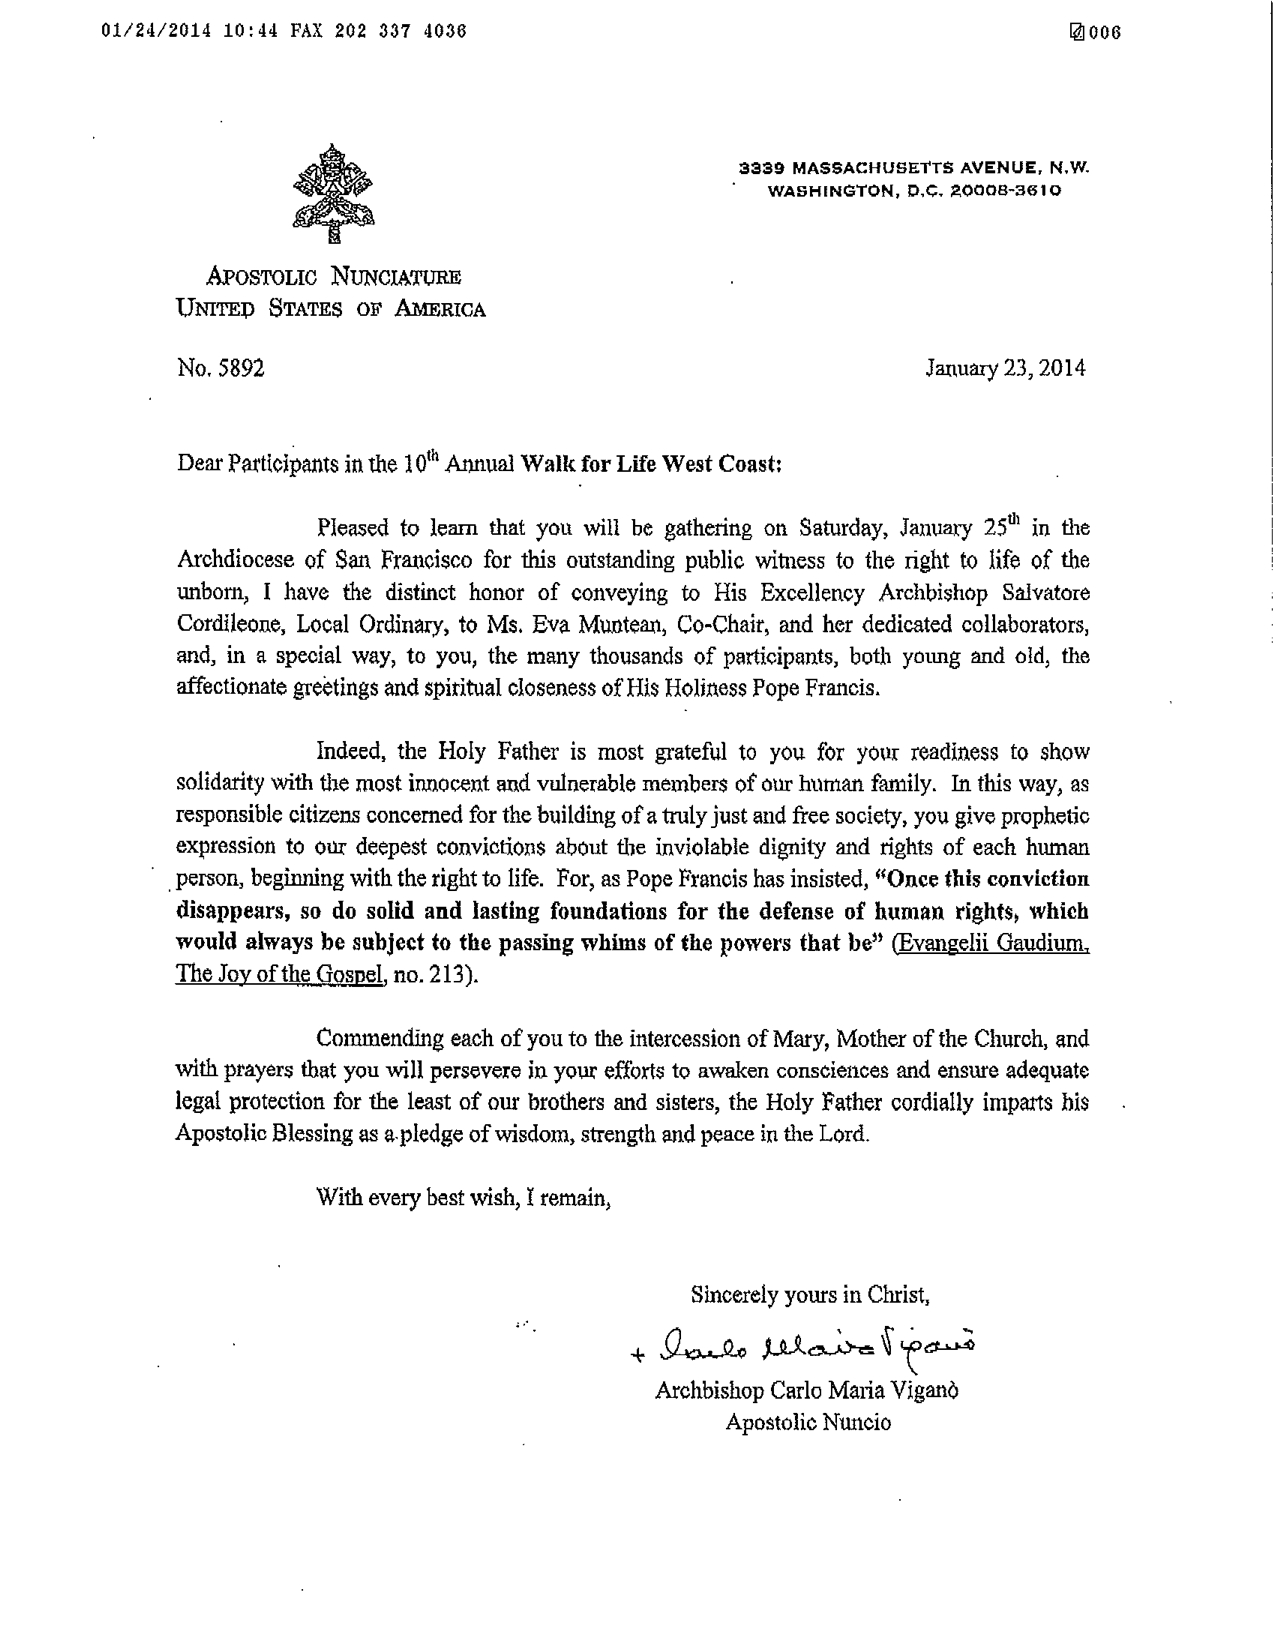 Ltr of Papal Nucio re WFL 4